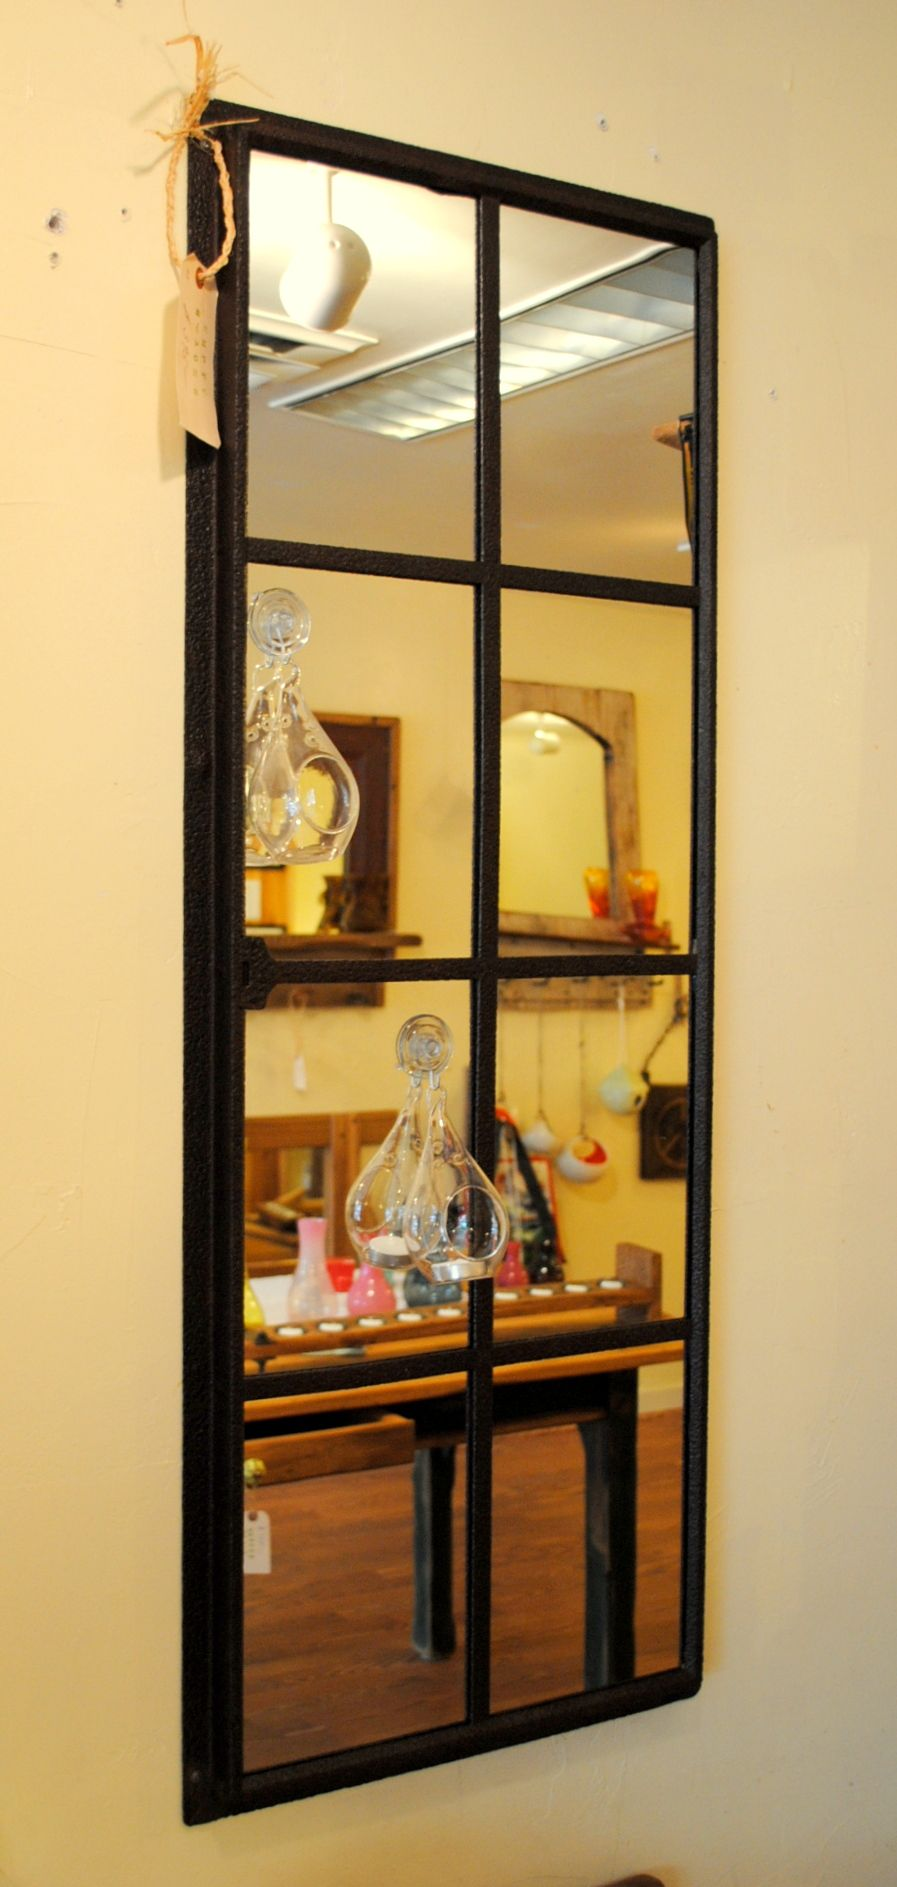 Rustic Window Pane Mirror   Window pane mirror, Window frames and ...